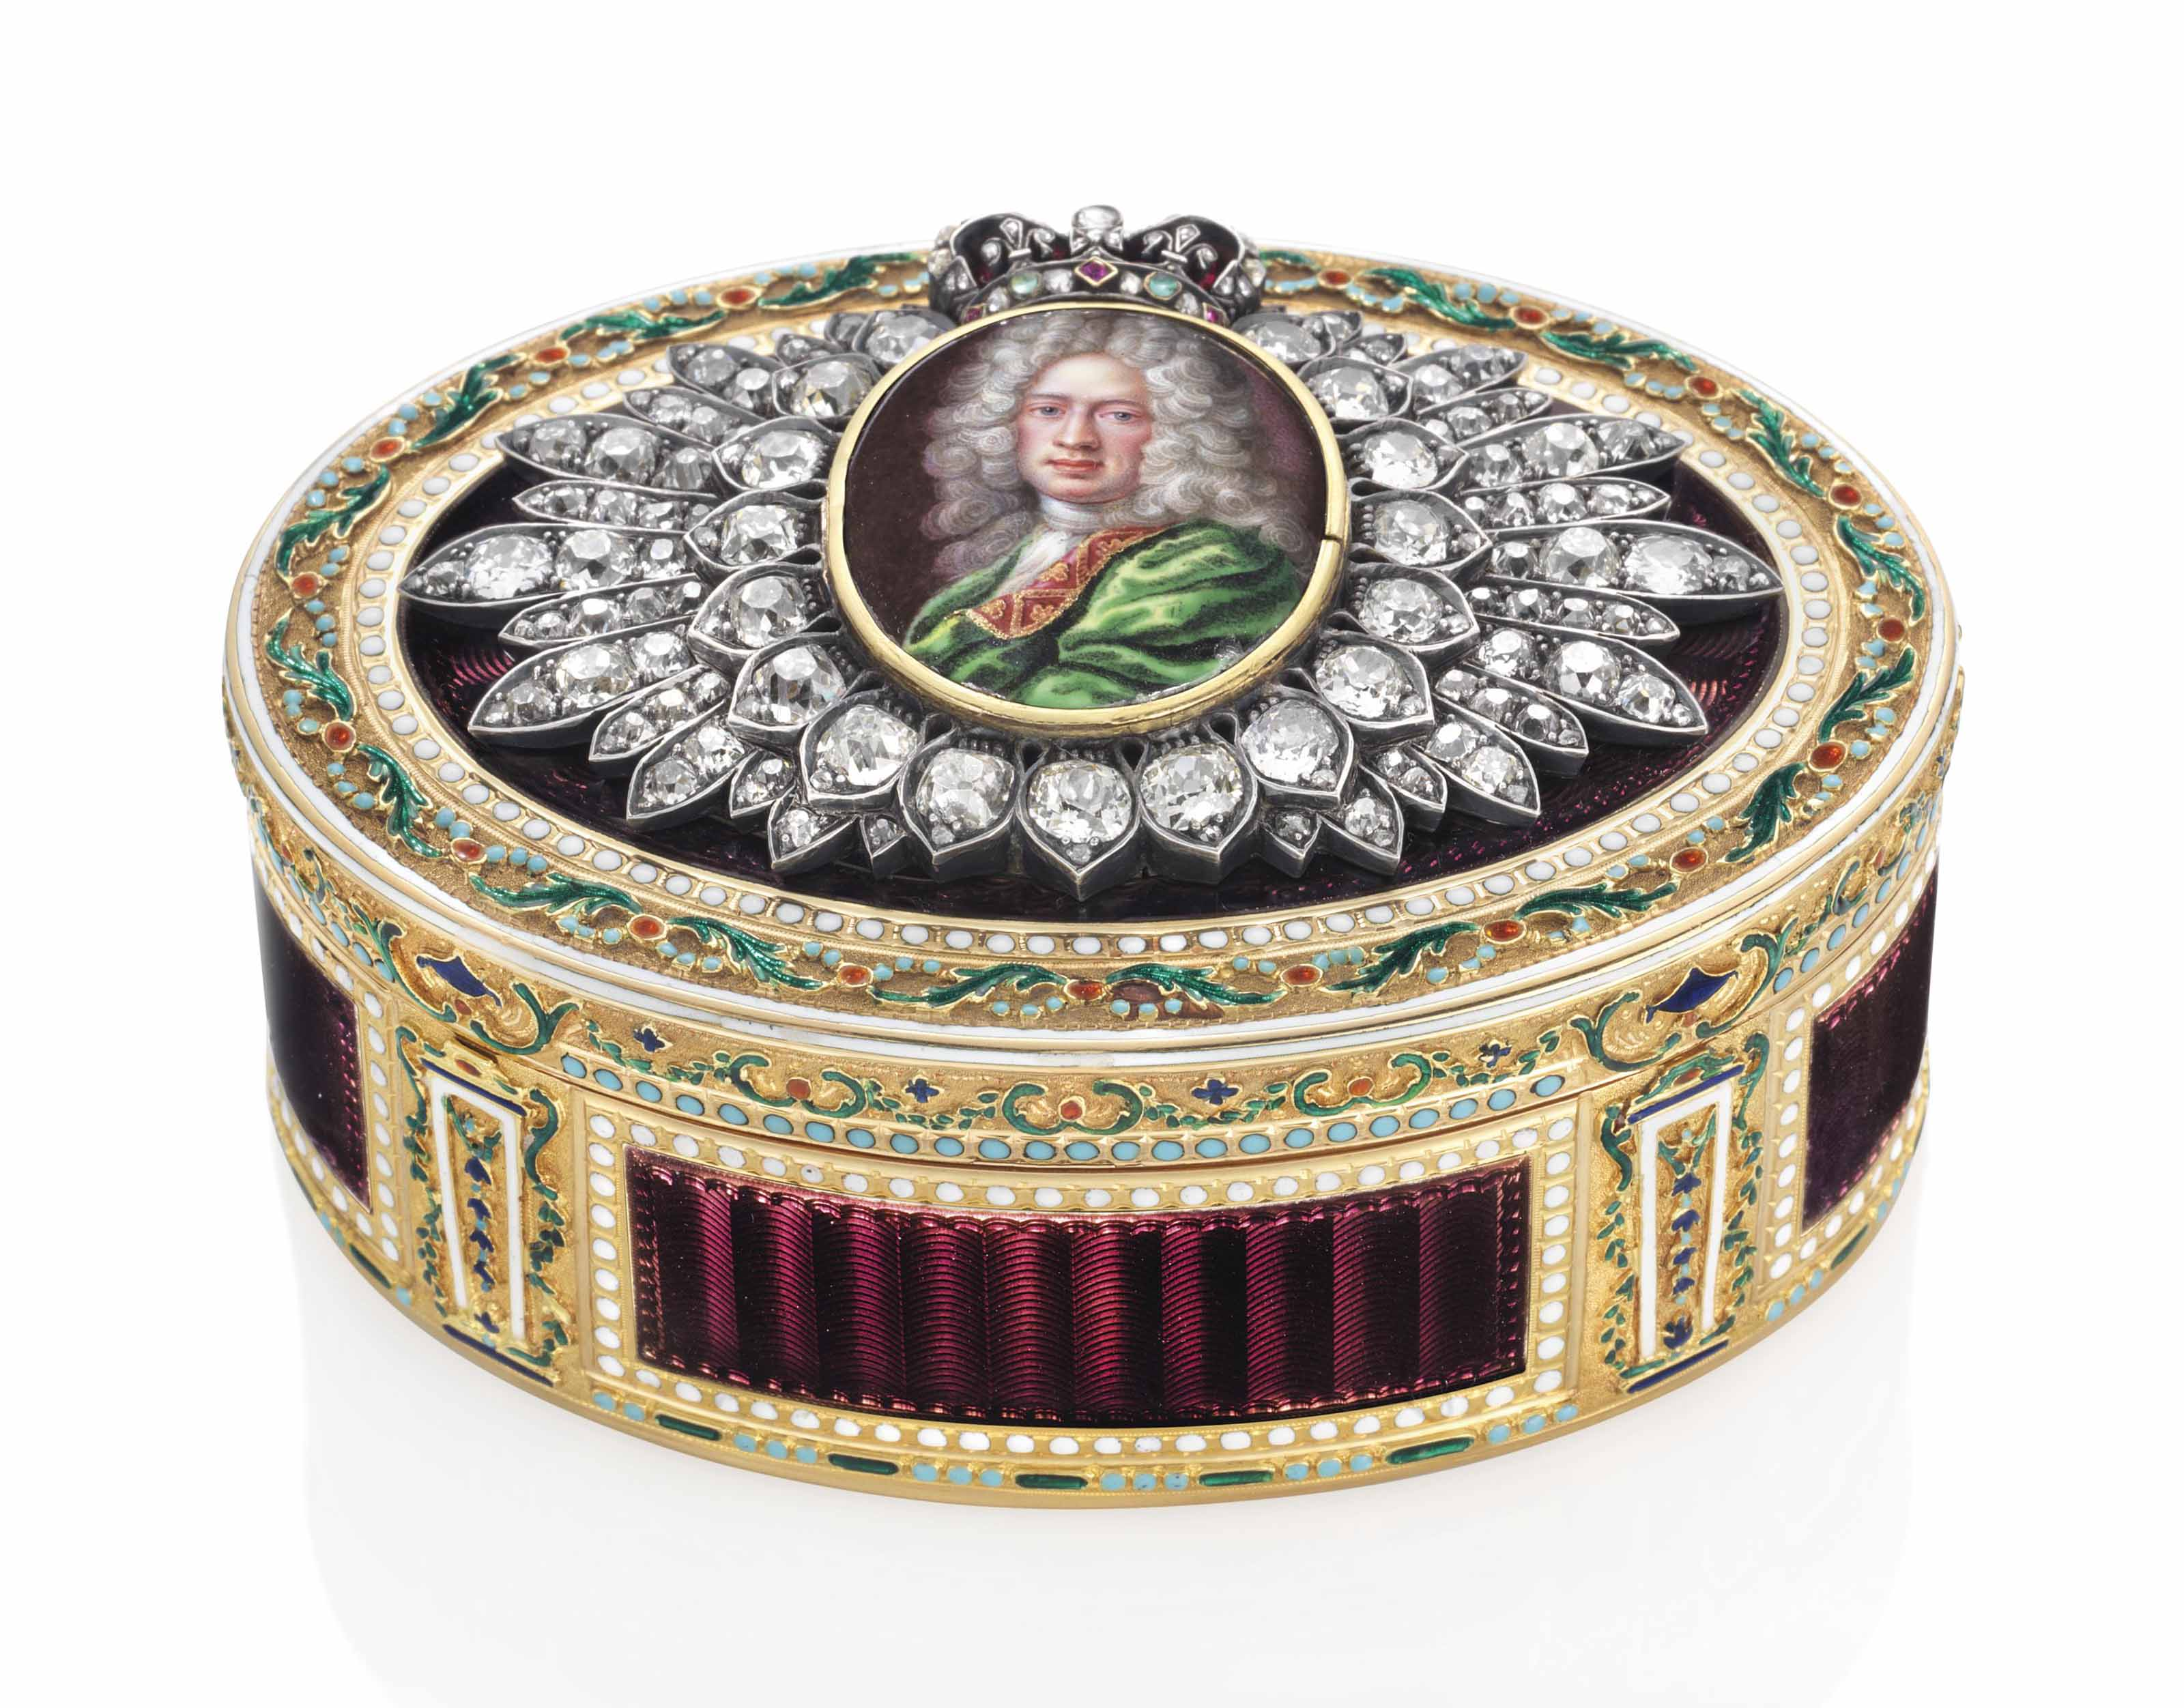 A LOUIS XVI JEWELLED ENAMELLED GOLD PRESENTATION SNUFF-BOX